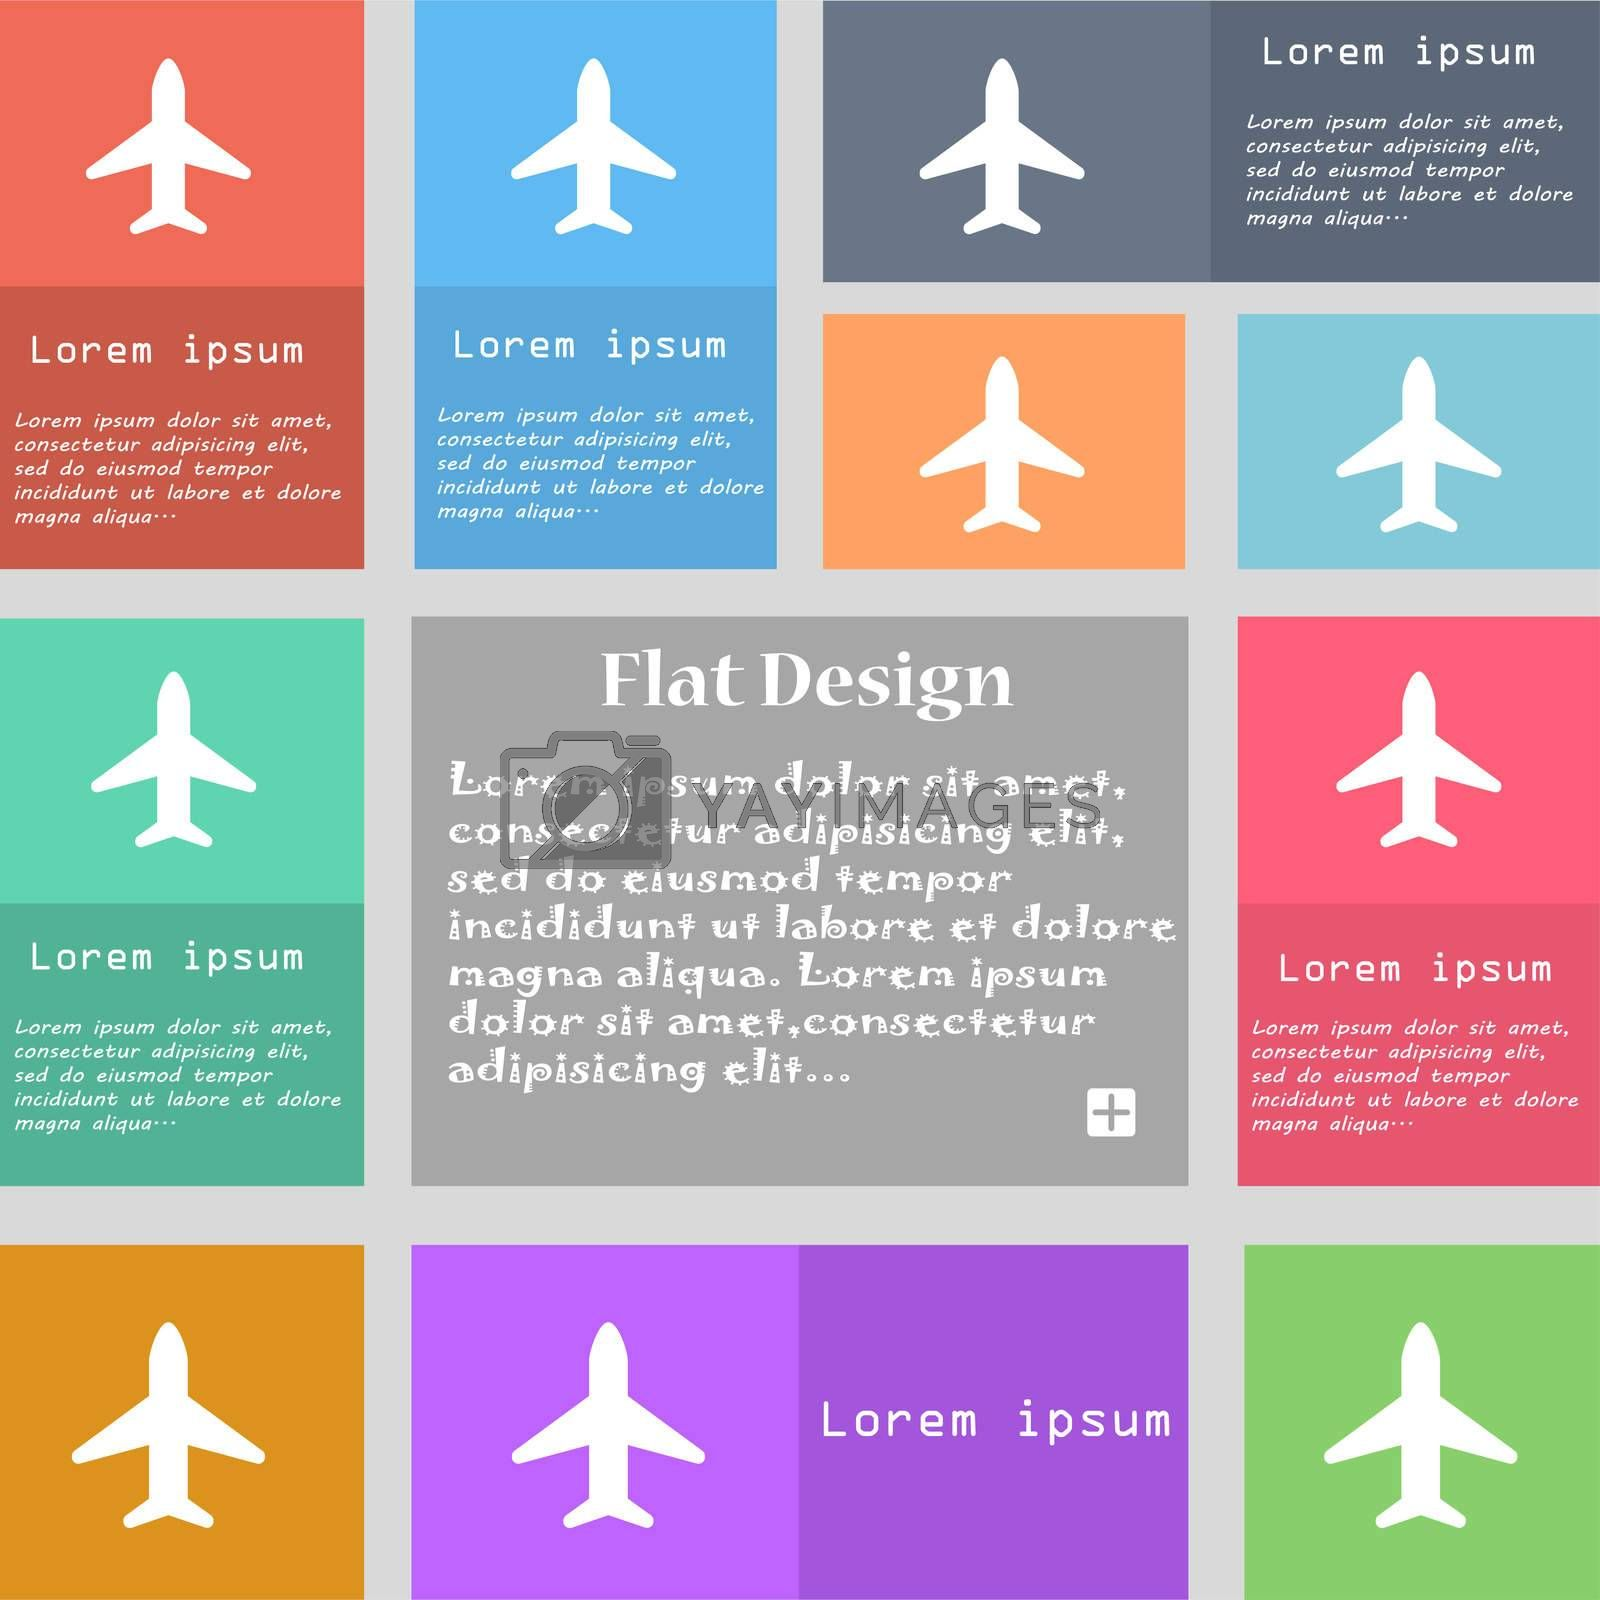 Airplane, Plane, Travel, Flight icon sign. Set of multicolored buttons. Metro style with space for text. The Long Shadow  by Serhii Lohvyniuk